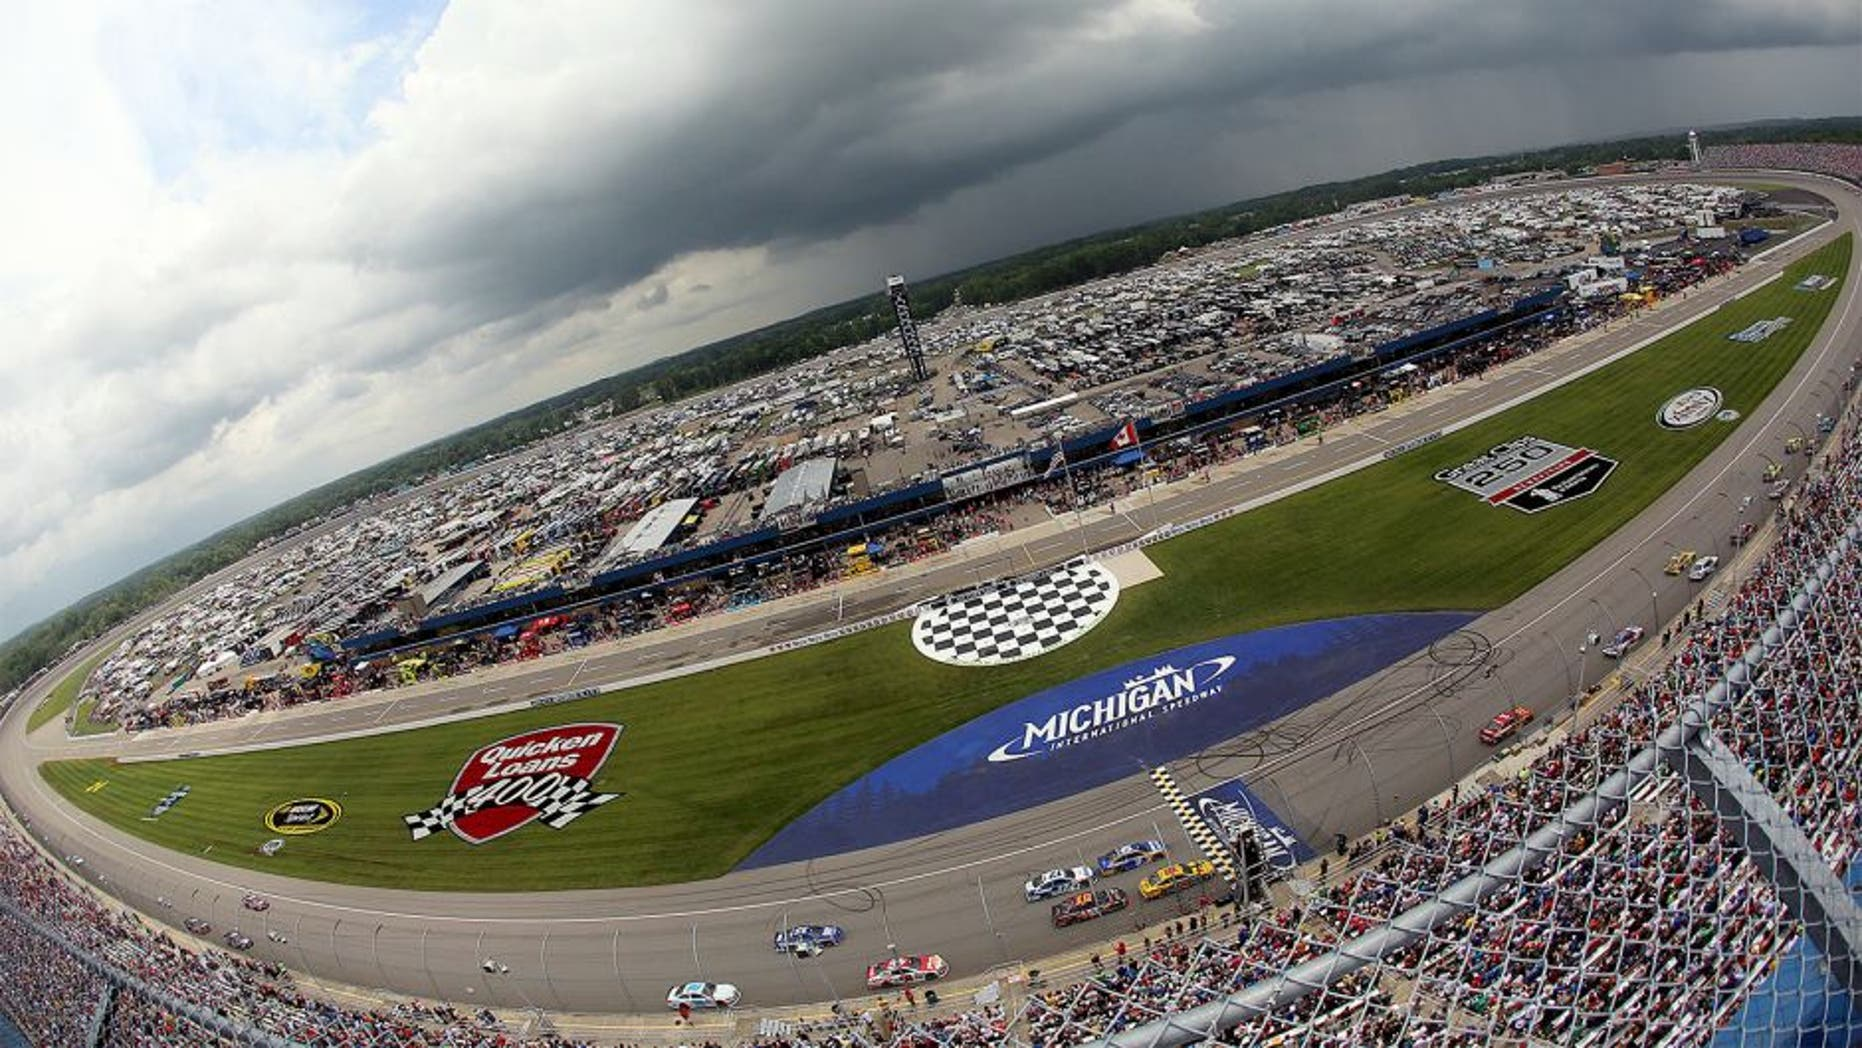 BROOKLYN, MI - JUNE 14: A general view of the NASCAR Sprint Cup Series Quicken Loans 400 at Michigan International Speedway on June 14, 2015 in Brooklyn, Michigan. (Photo by Rey Del Rio/Getty Images)